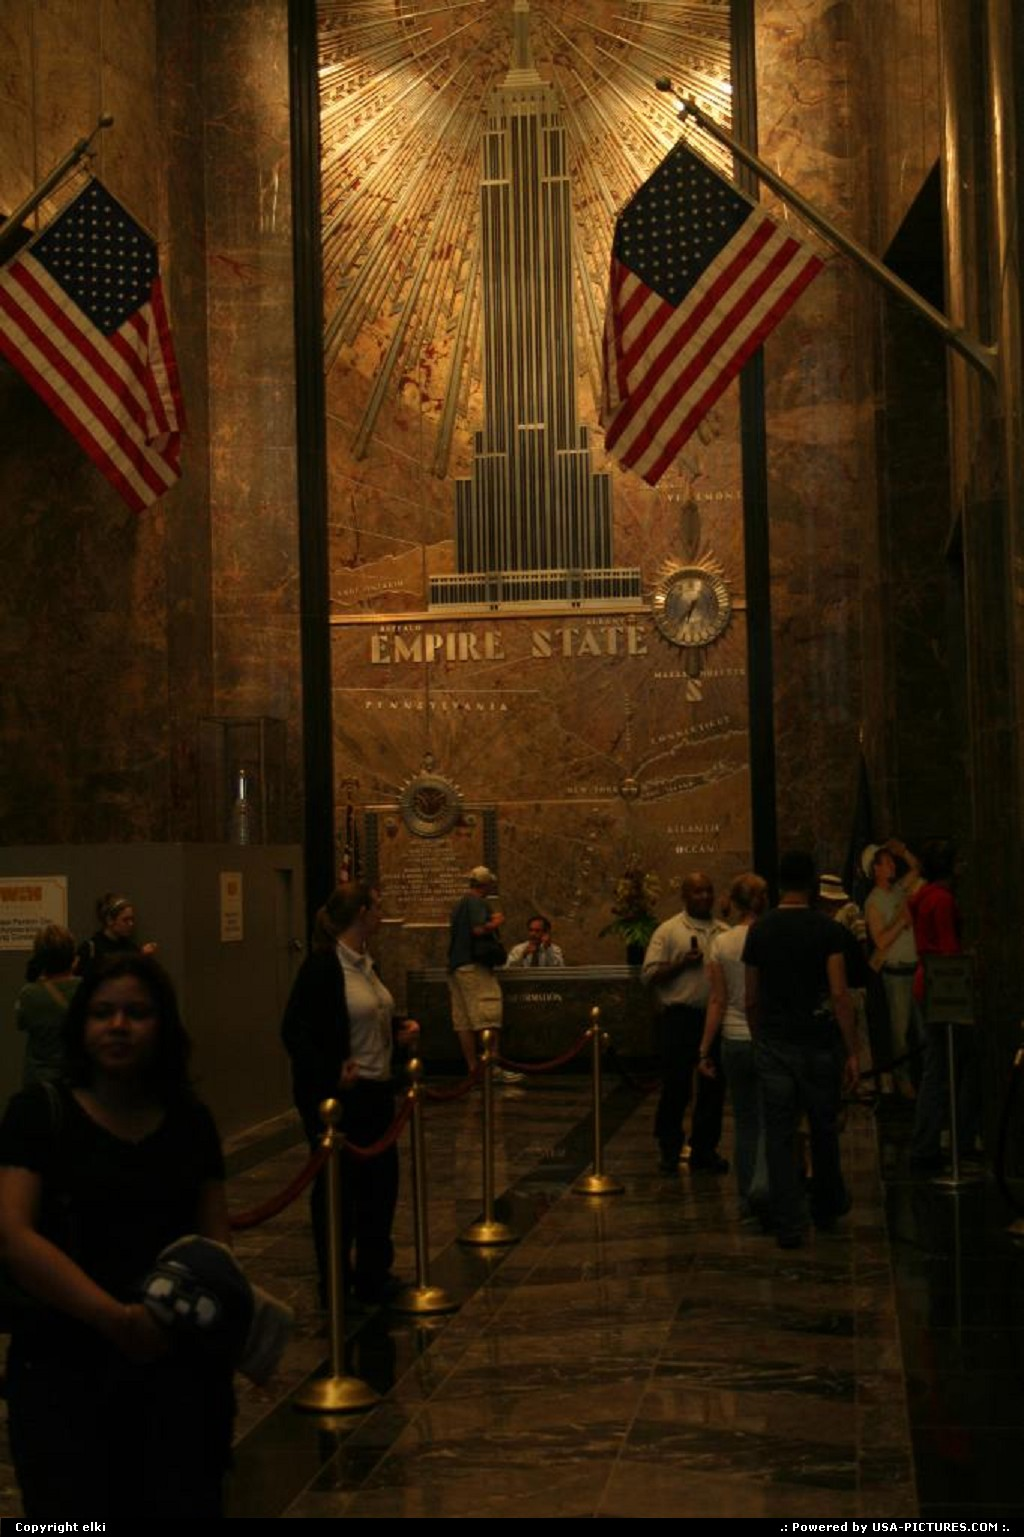 Picture by elki:New YorkNew-yorkNew york empire state building